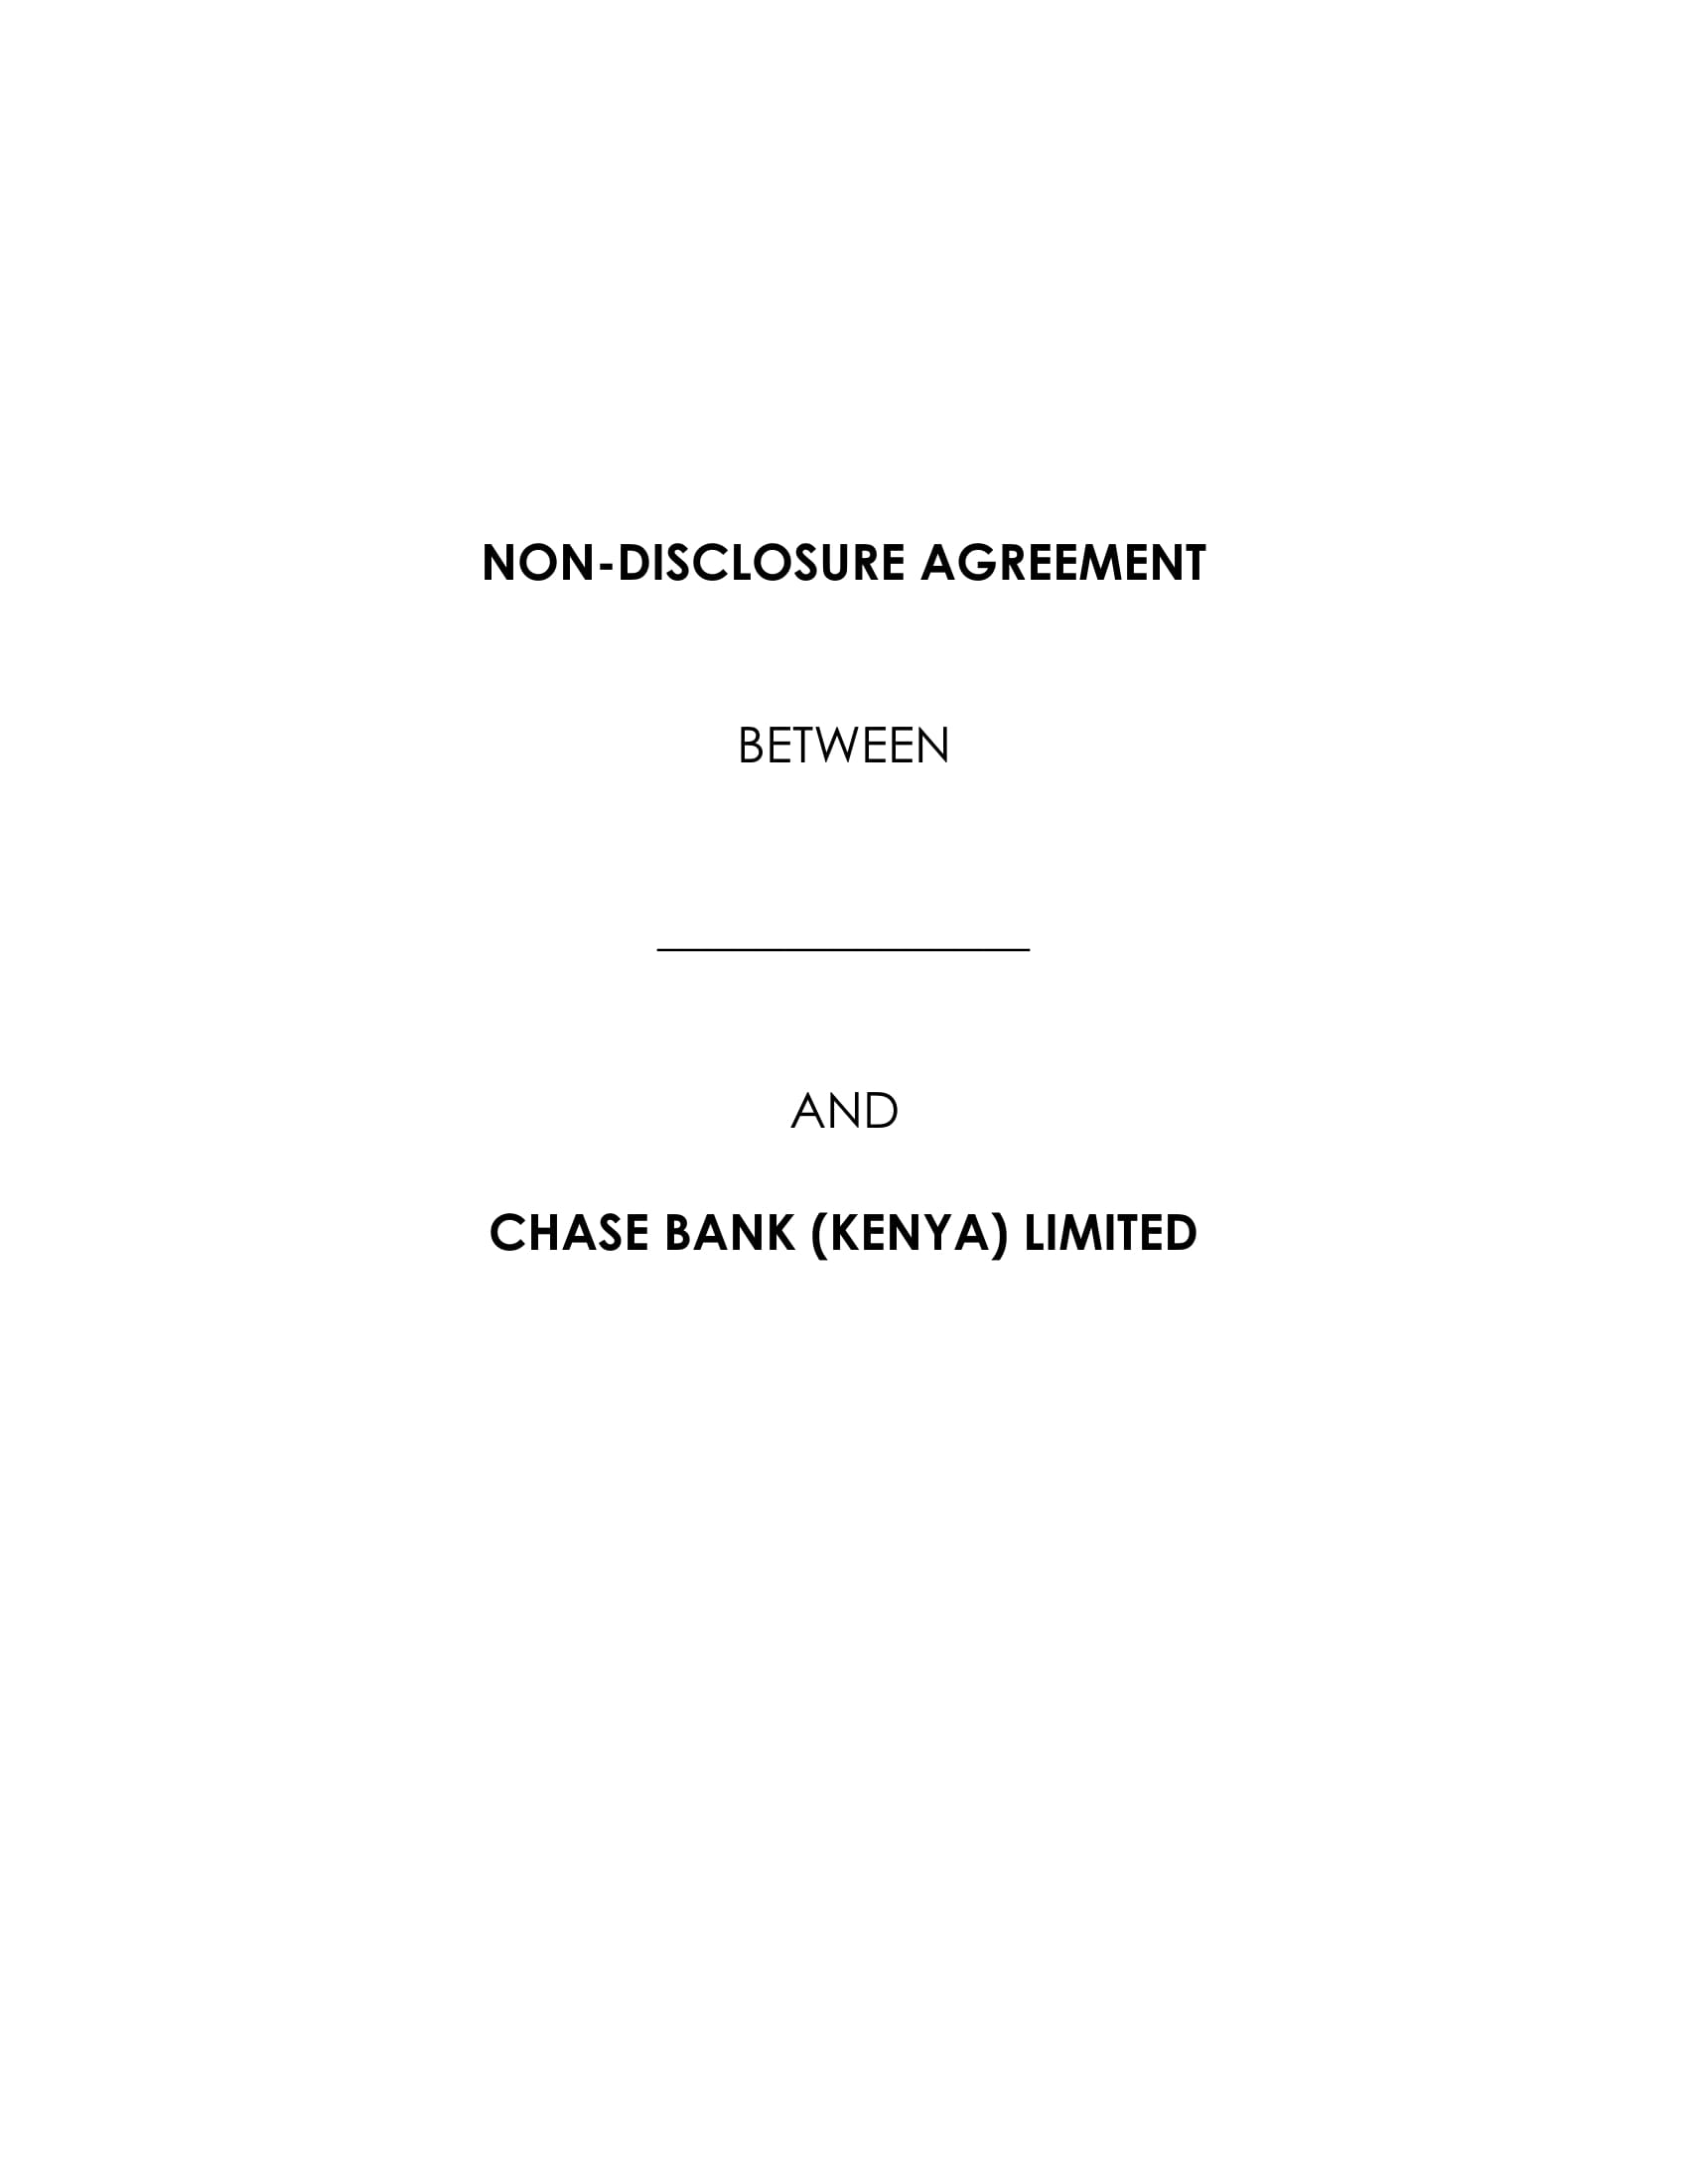 bank financial confidentiality agreement example